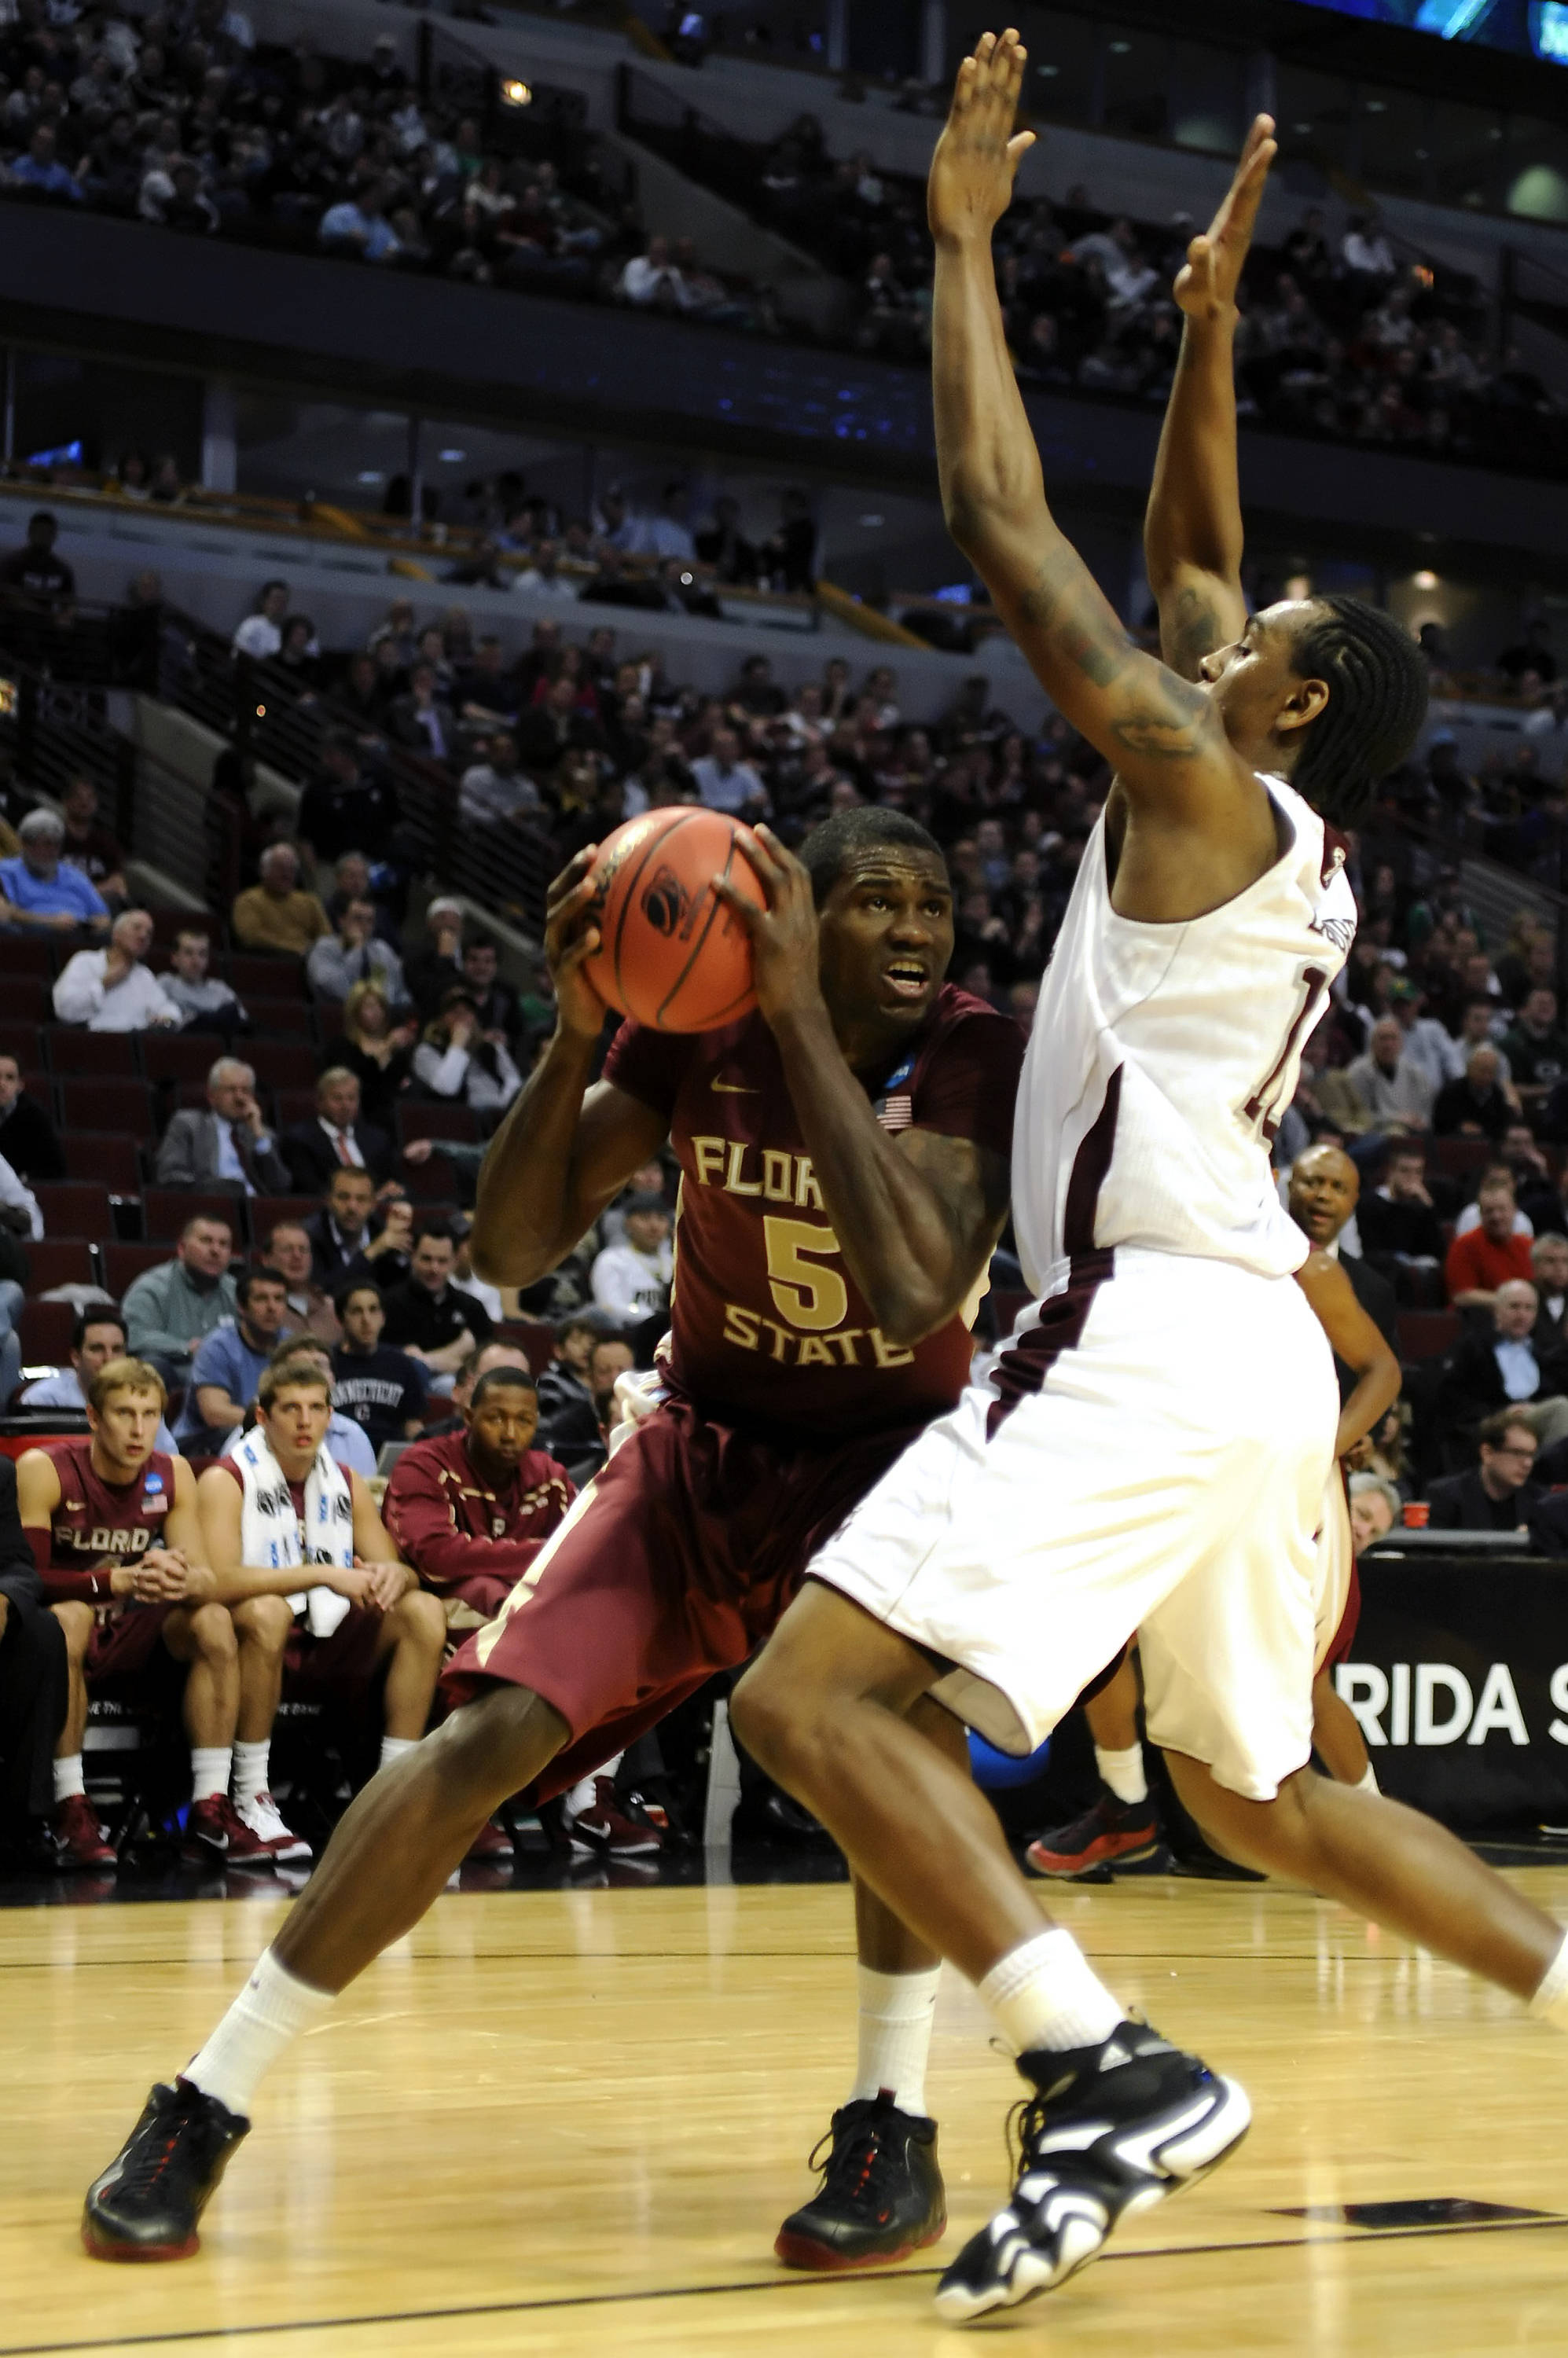 Bernard James looks for an opening to shoot against the Aggies